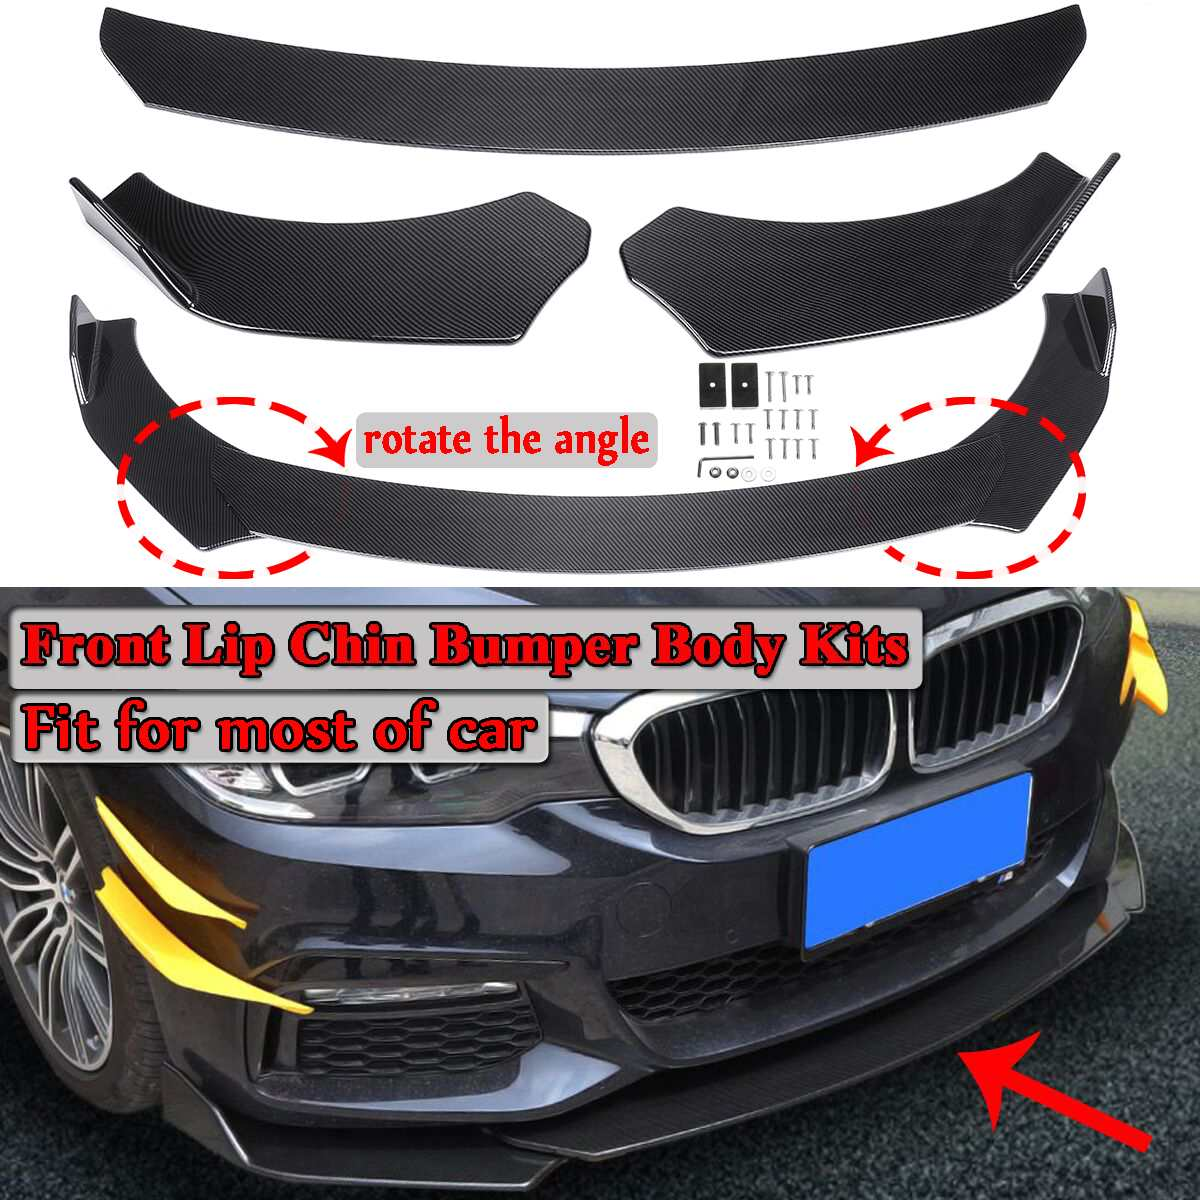 Carbon Fiber Look/ Black Universal Car Front Bumper Lip Body Kits Splitter Diffuser For BMW For Benz For Audi For VW For Subaru